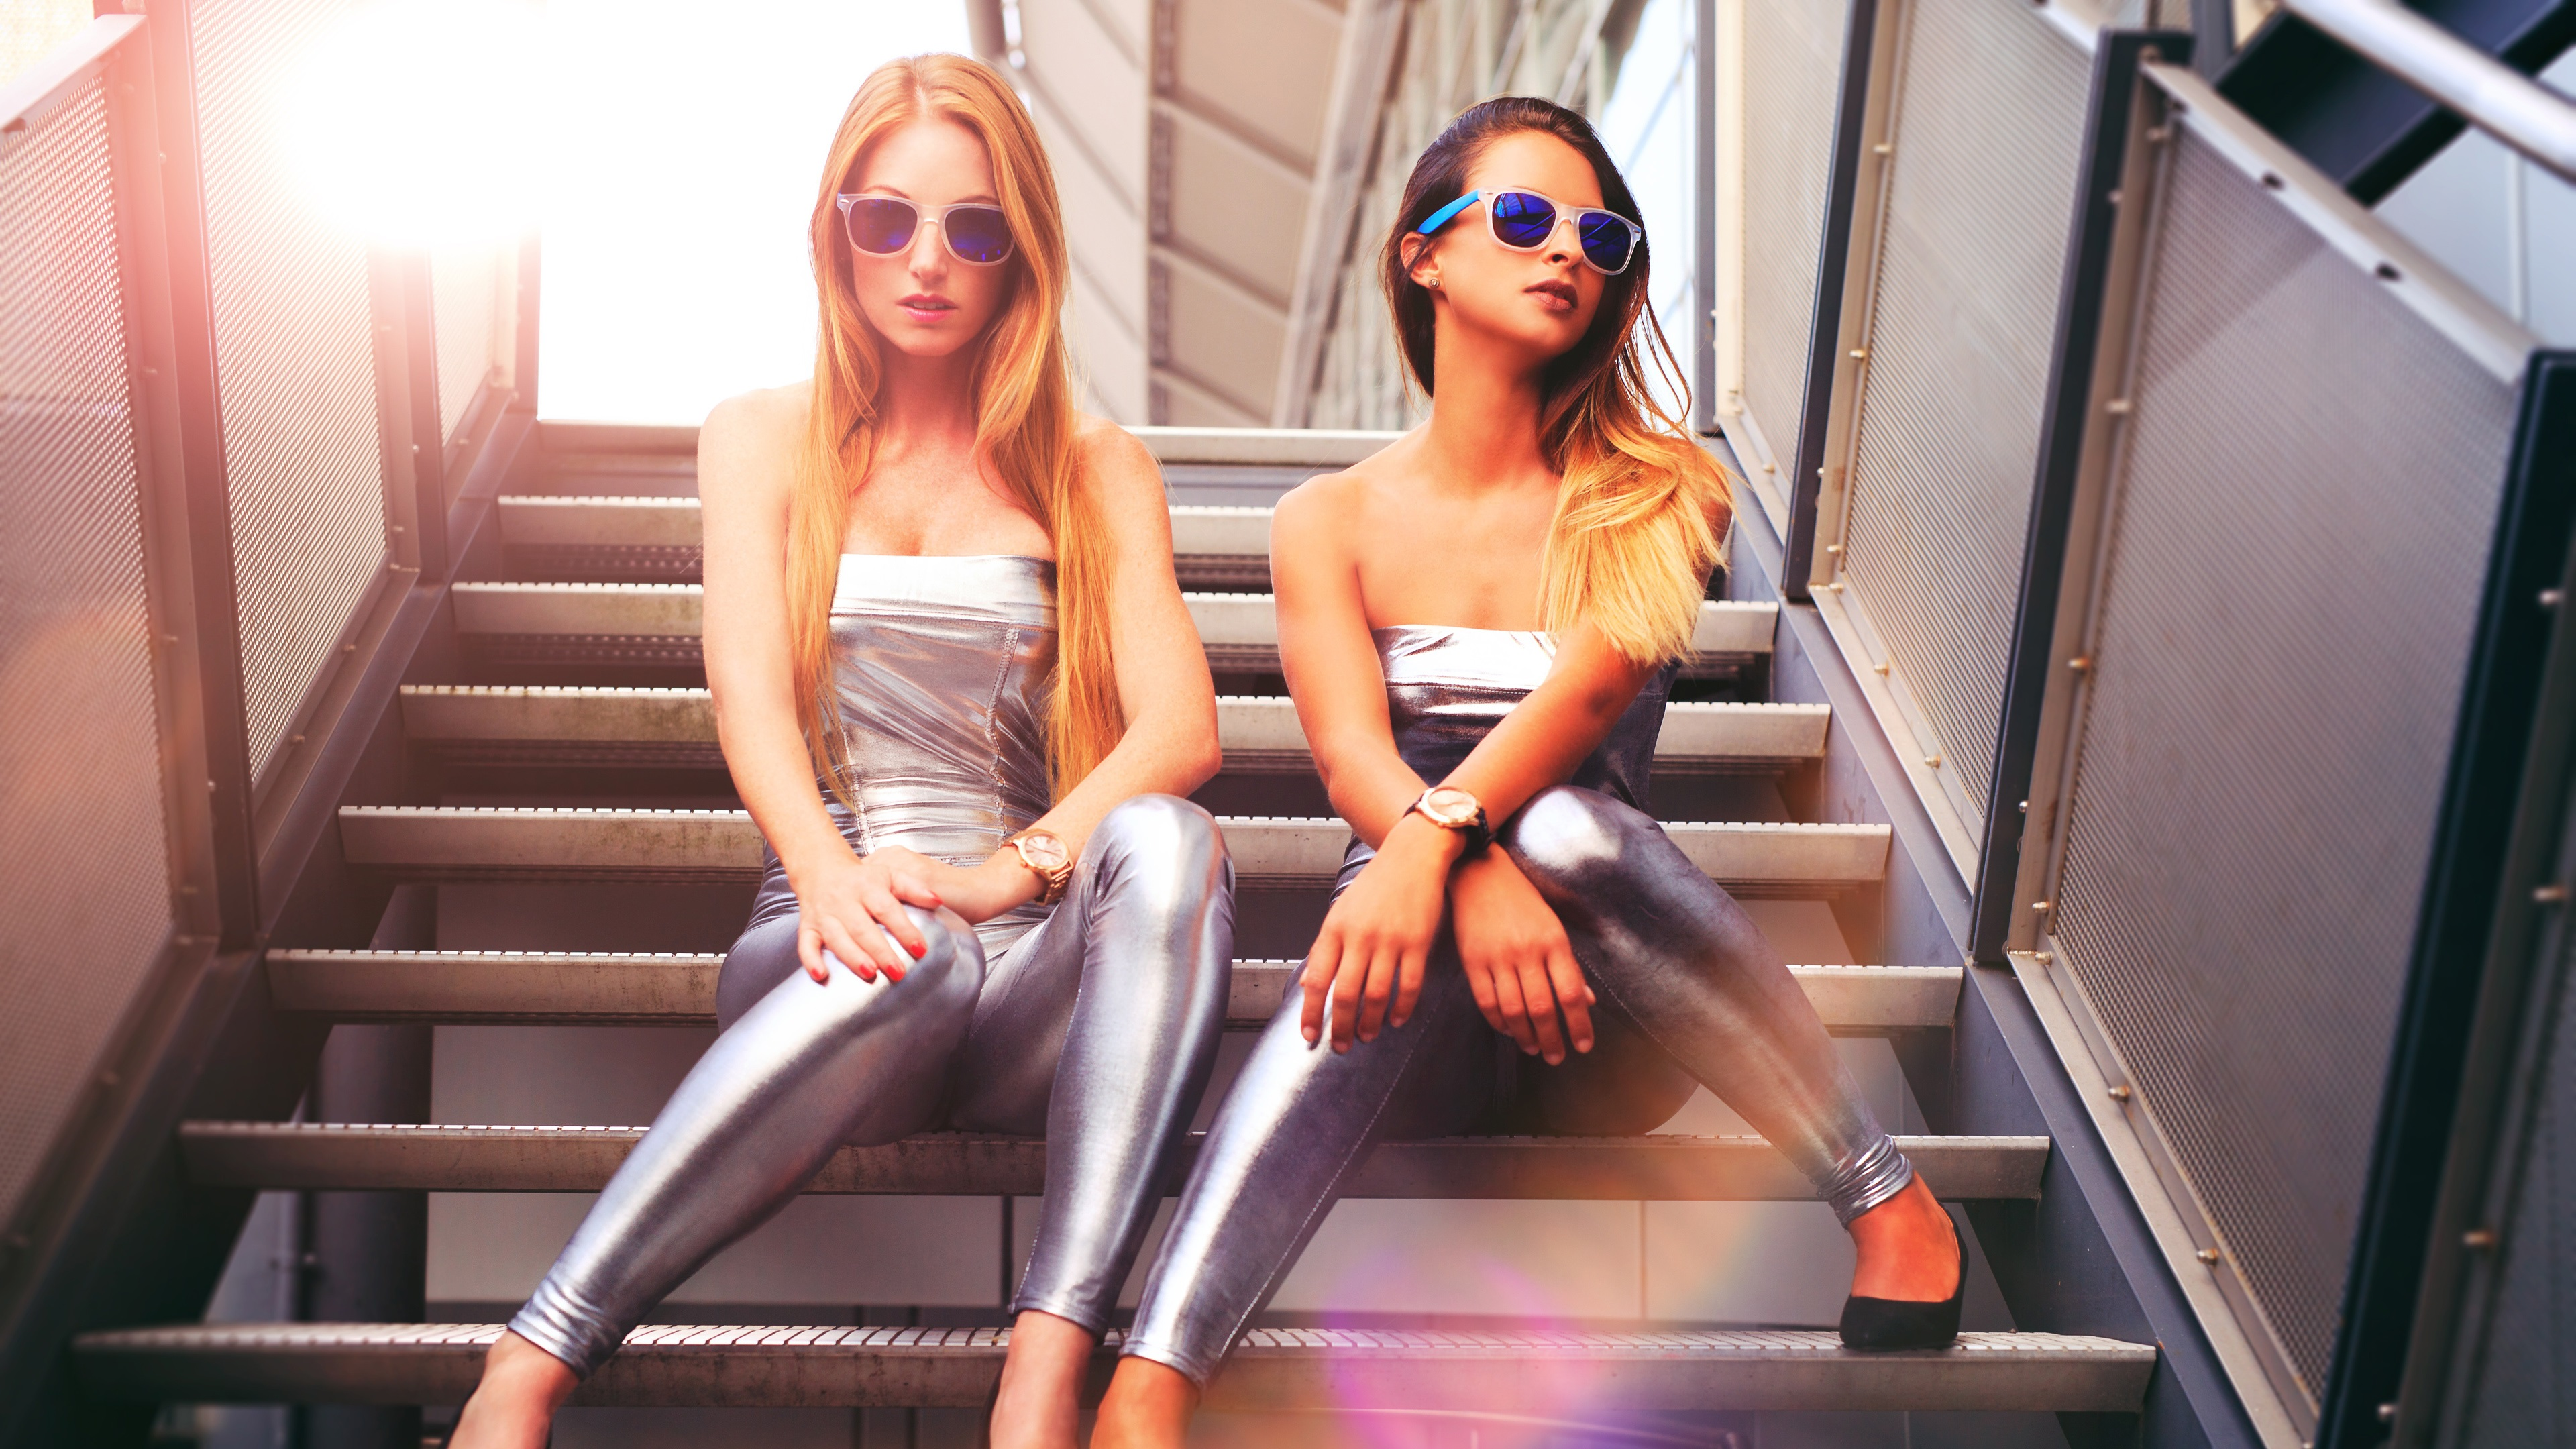 Wallpaper Silver Dress Girls Sit At Stairs Glasses Blonde